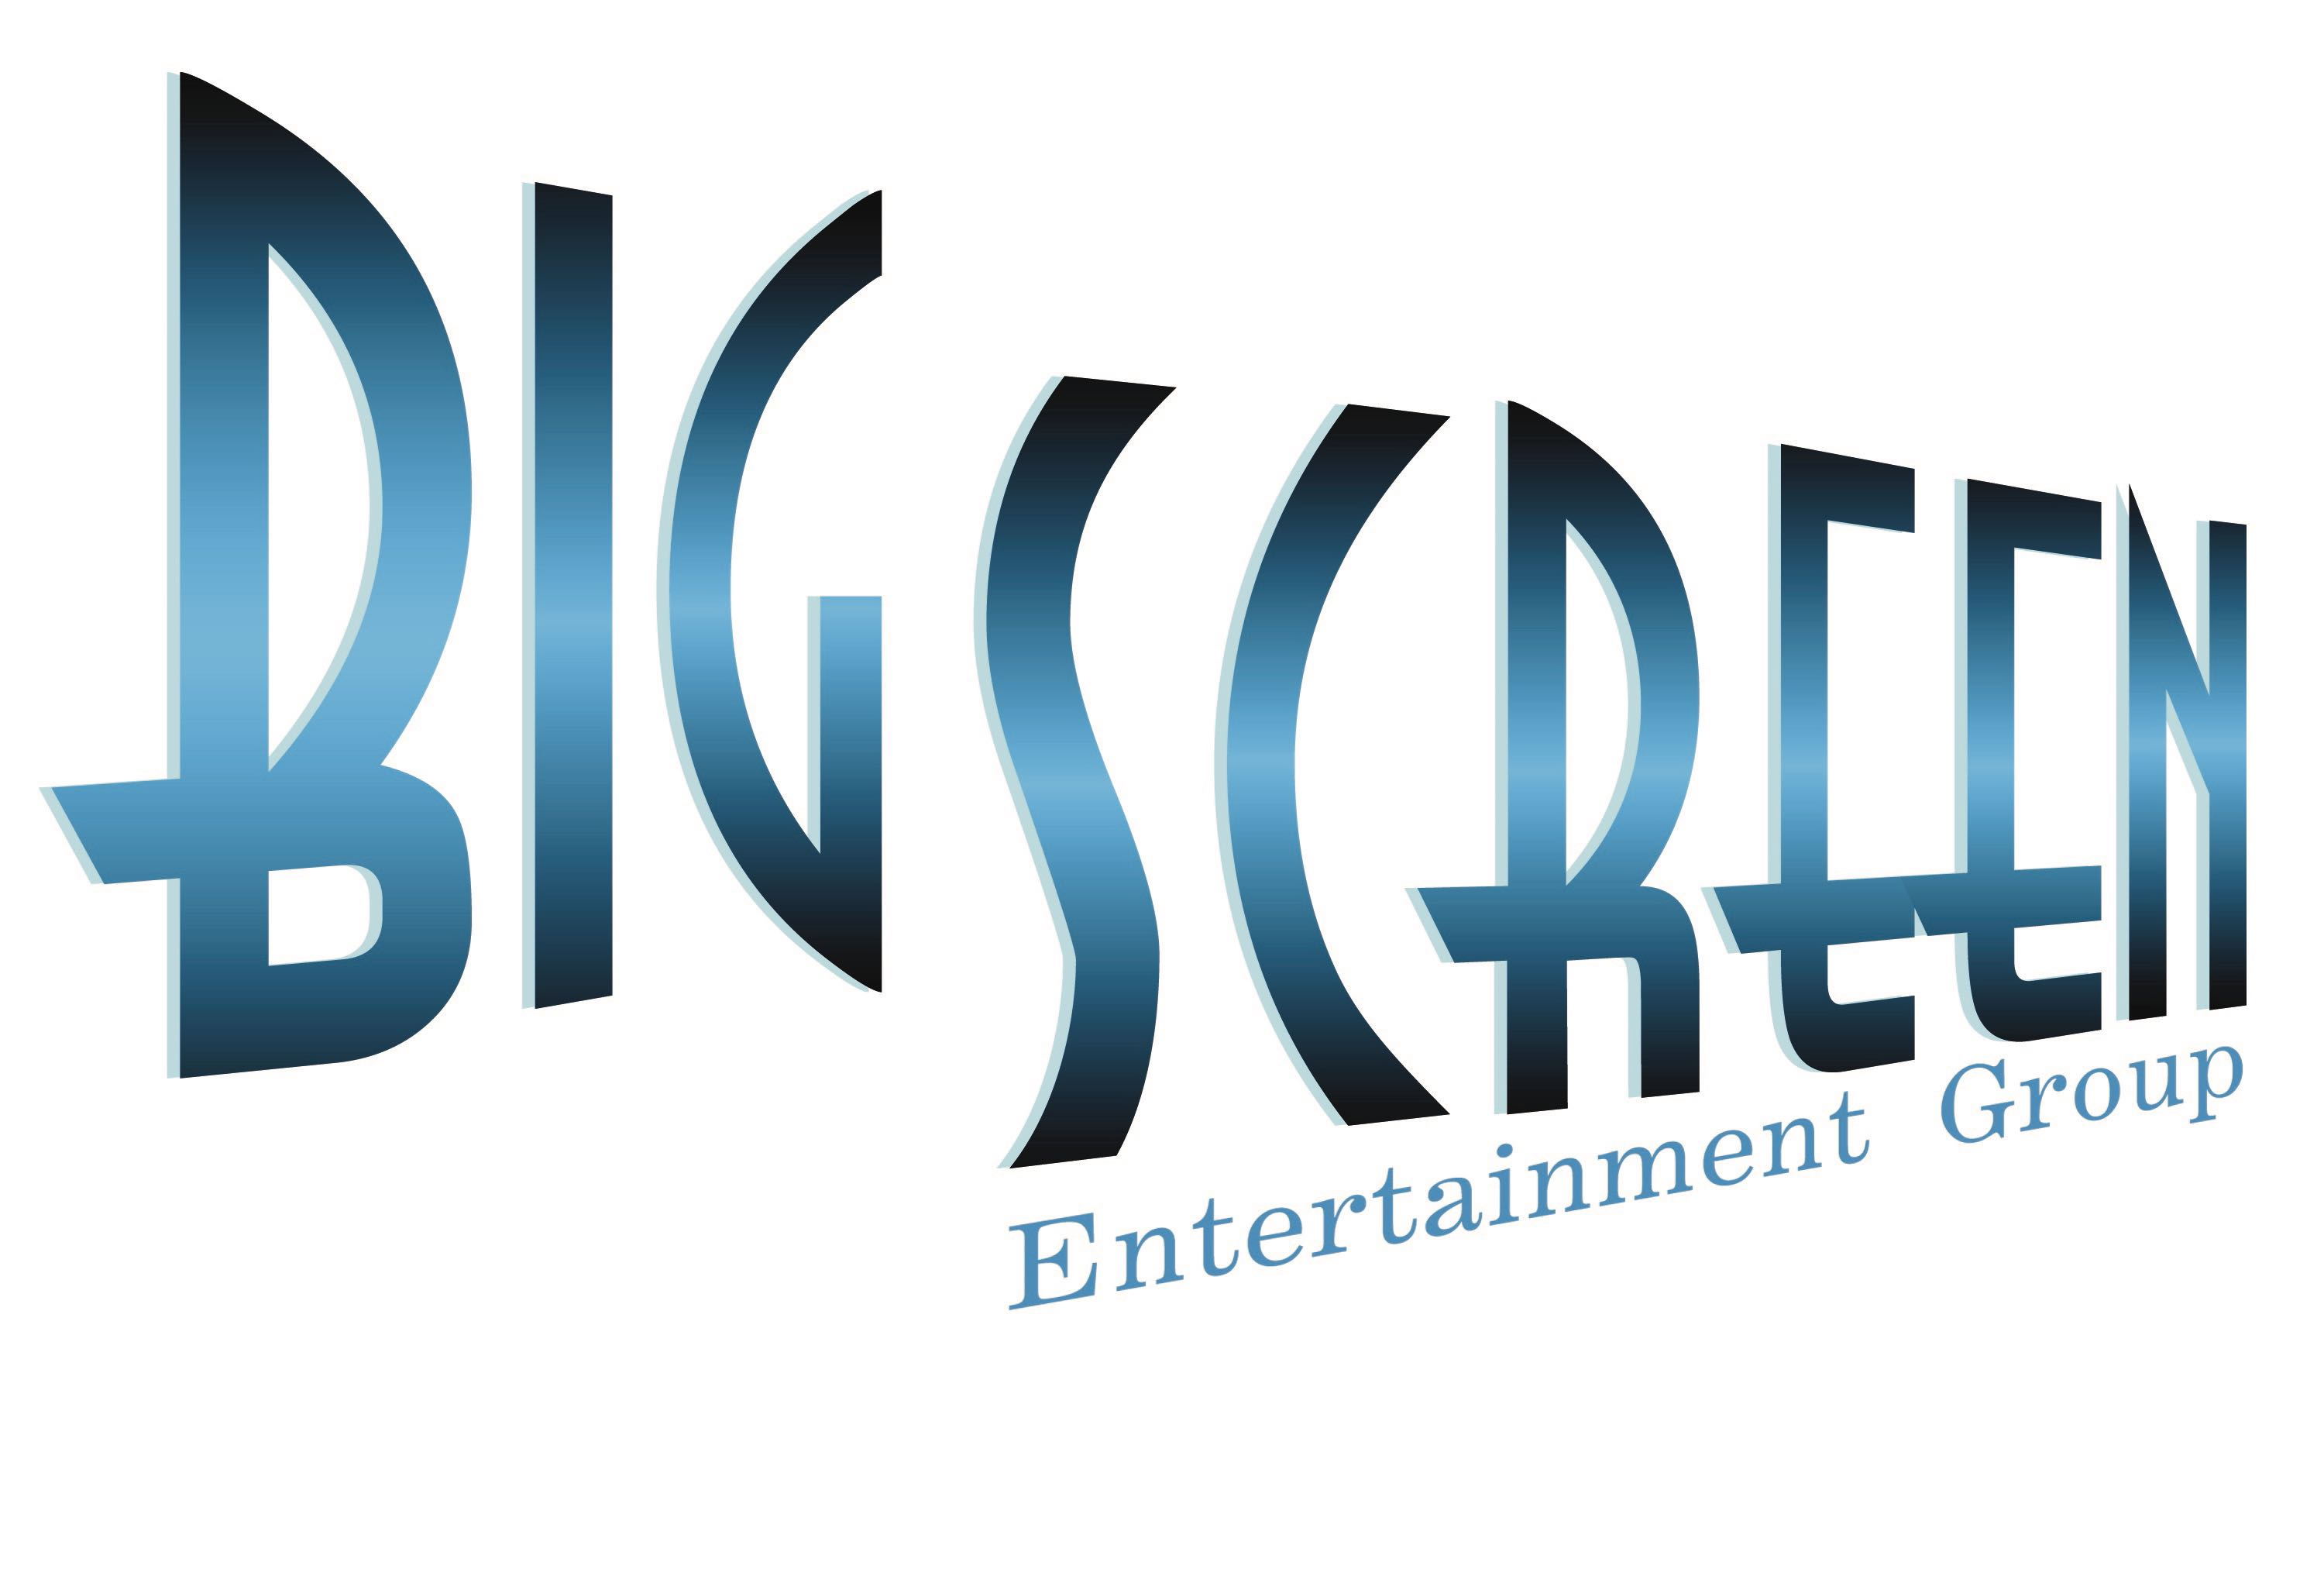 small BSEG_highres_logo_white-2.jpg